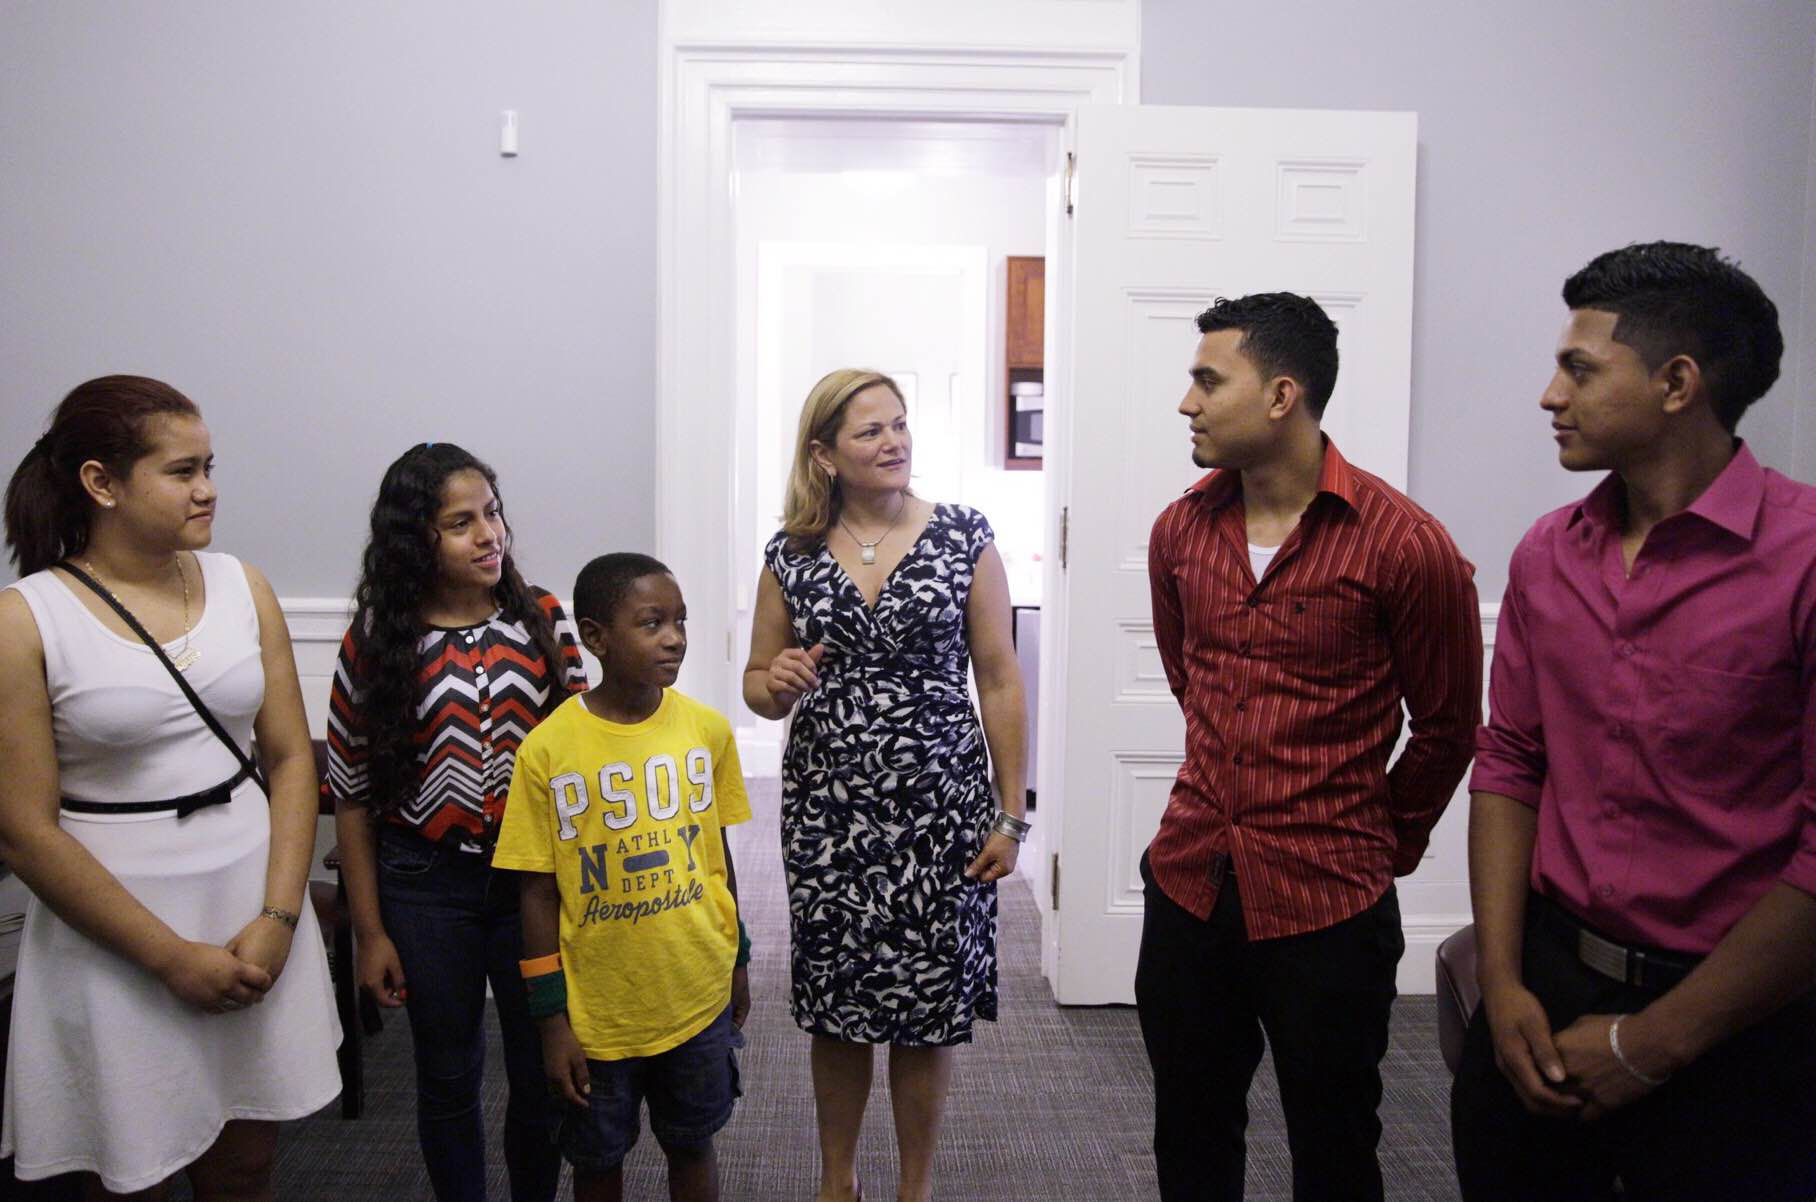 Melissa Mark-Viverito stands with children who arrived alone in the United States without documents. (Photo: William Alatriste/New York City Council)